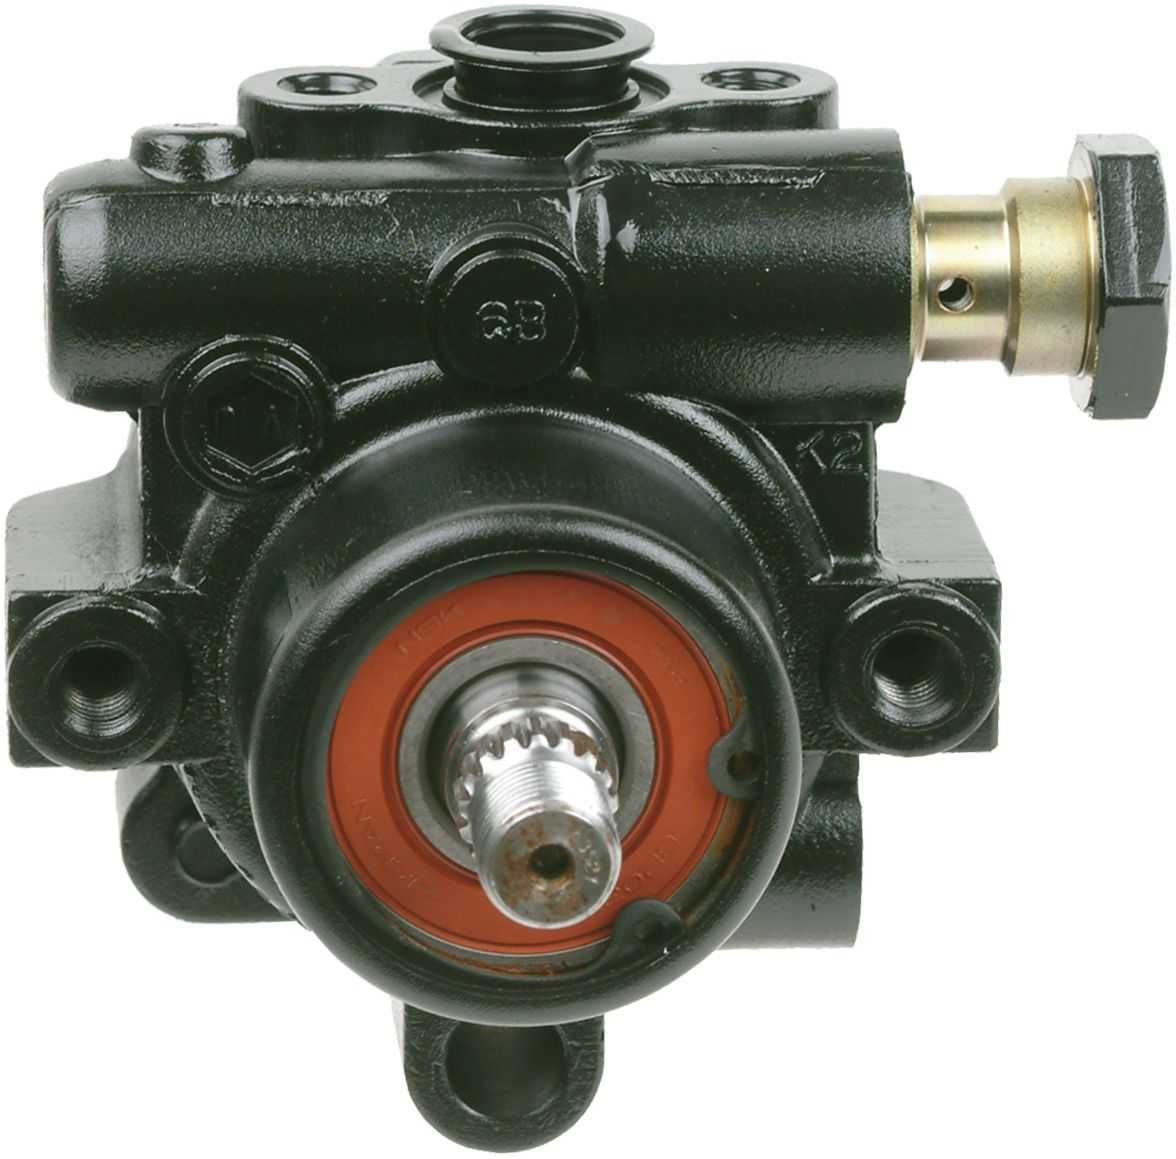 ... 2006 Nissan Murano Power Steering Pump A1 21-5367